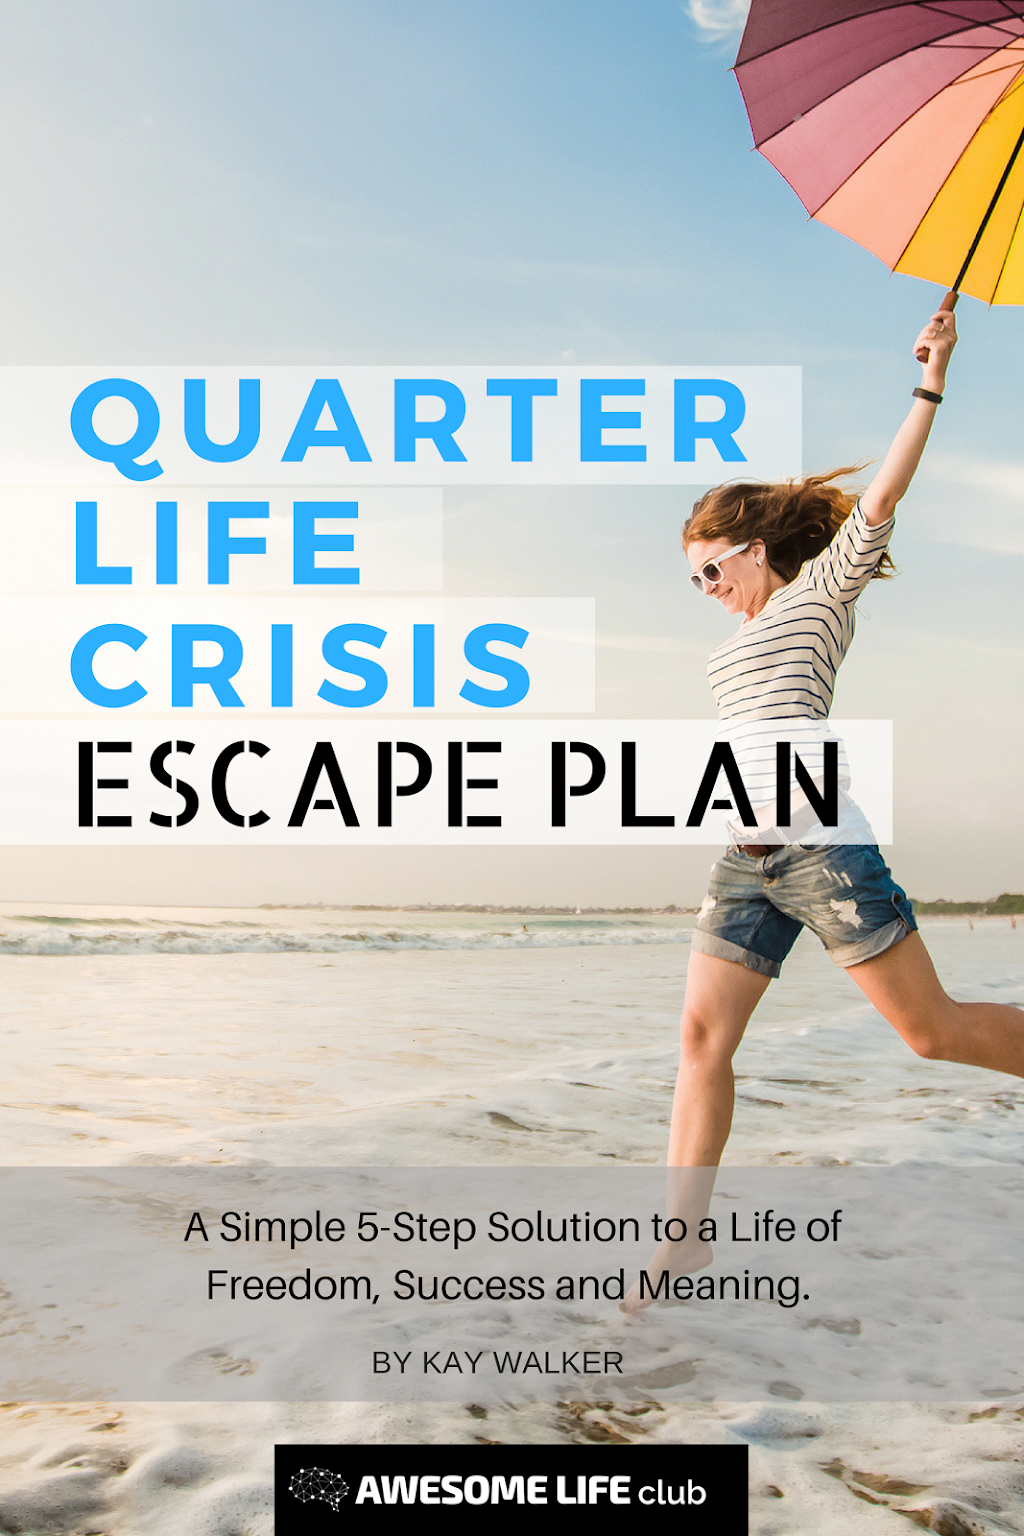 Quarter Life Crisis Escape Plan